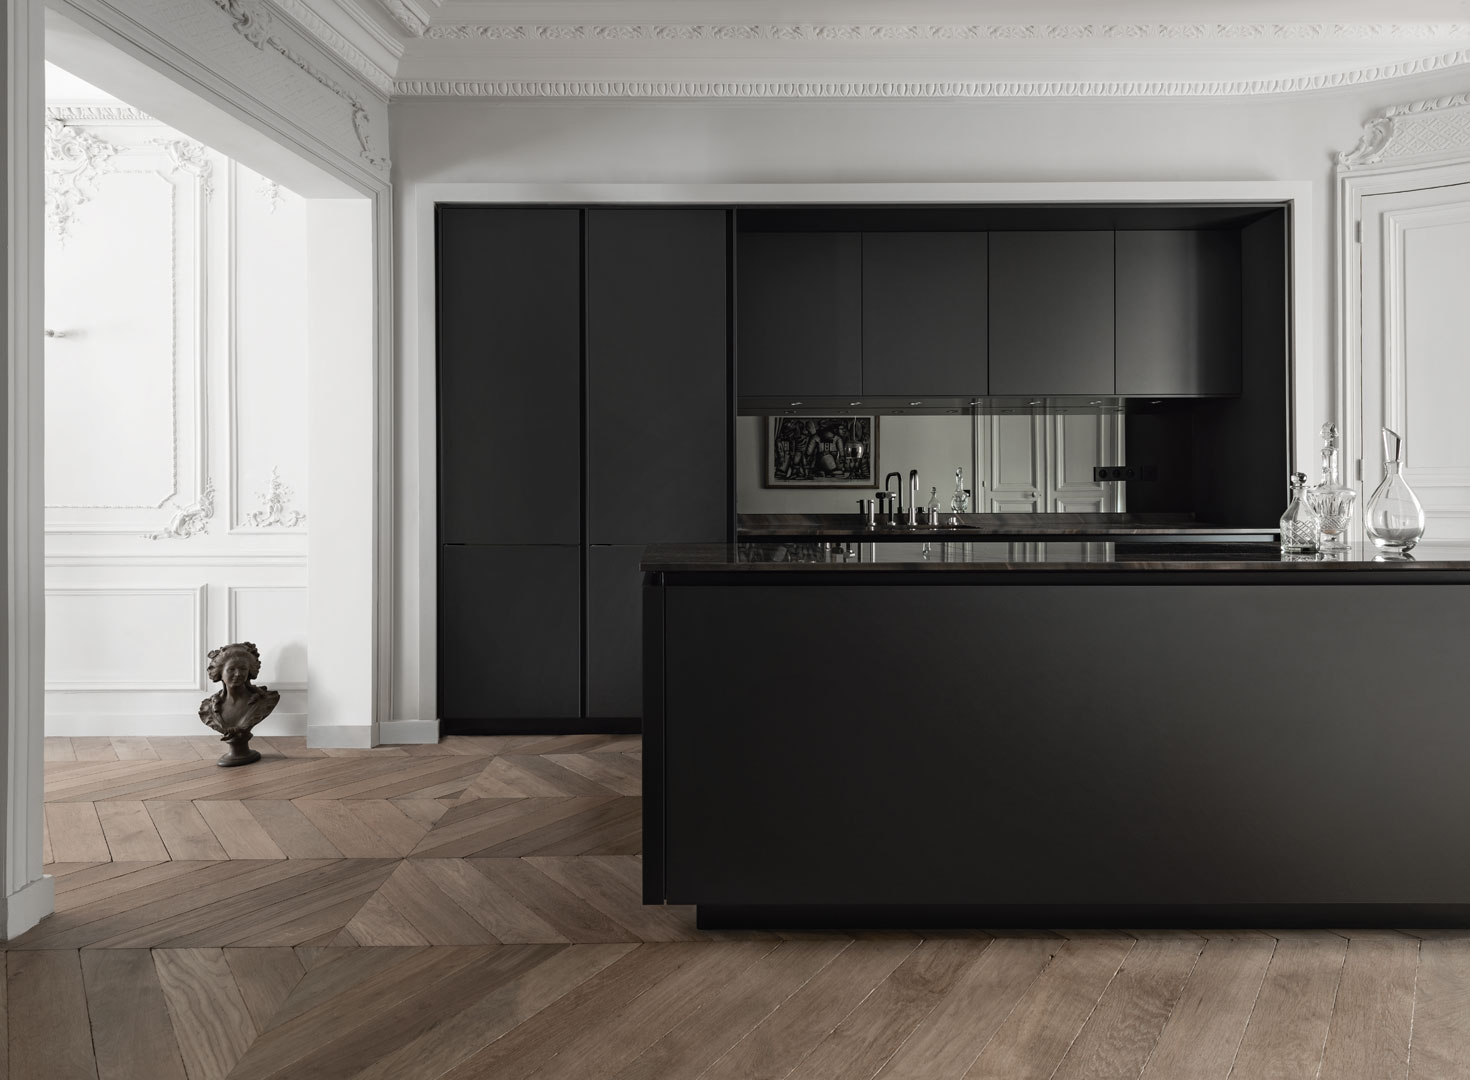 siematic k chen im vergleich ideen bilder unterschiede der pure classic und urban linie. Black Bedroom Furniture Sets. Home Design Ideas